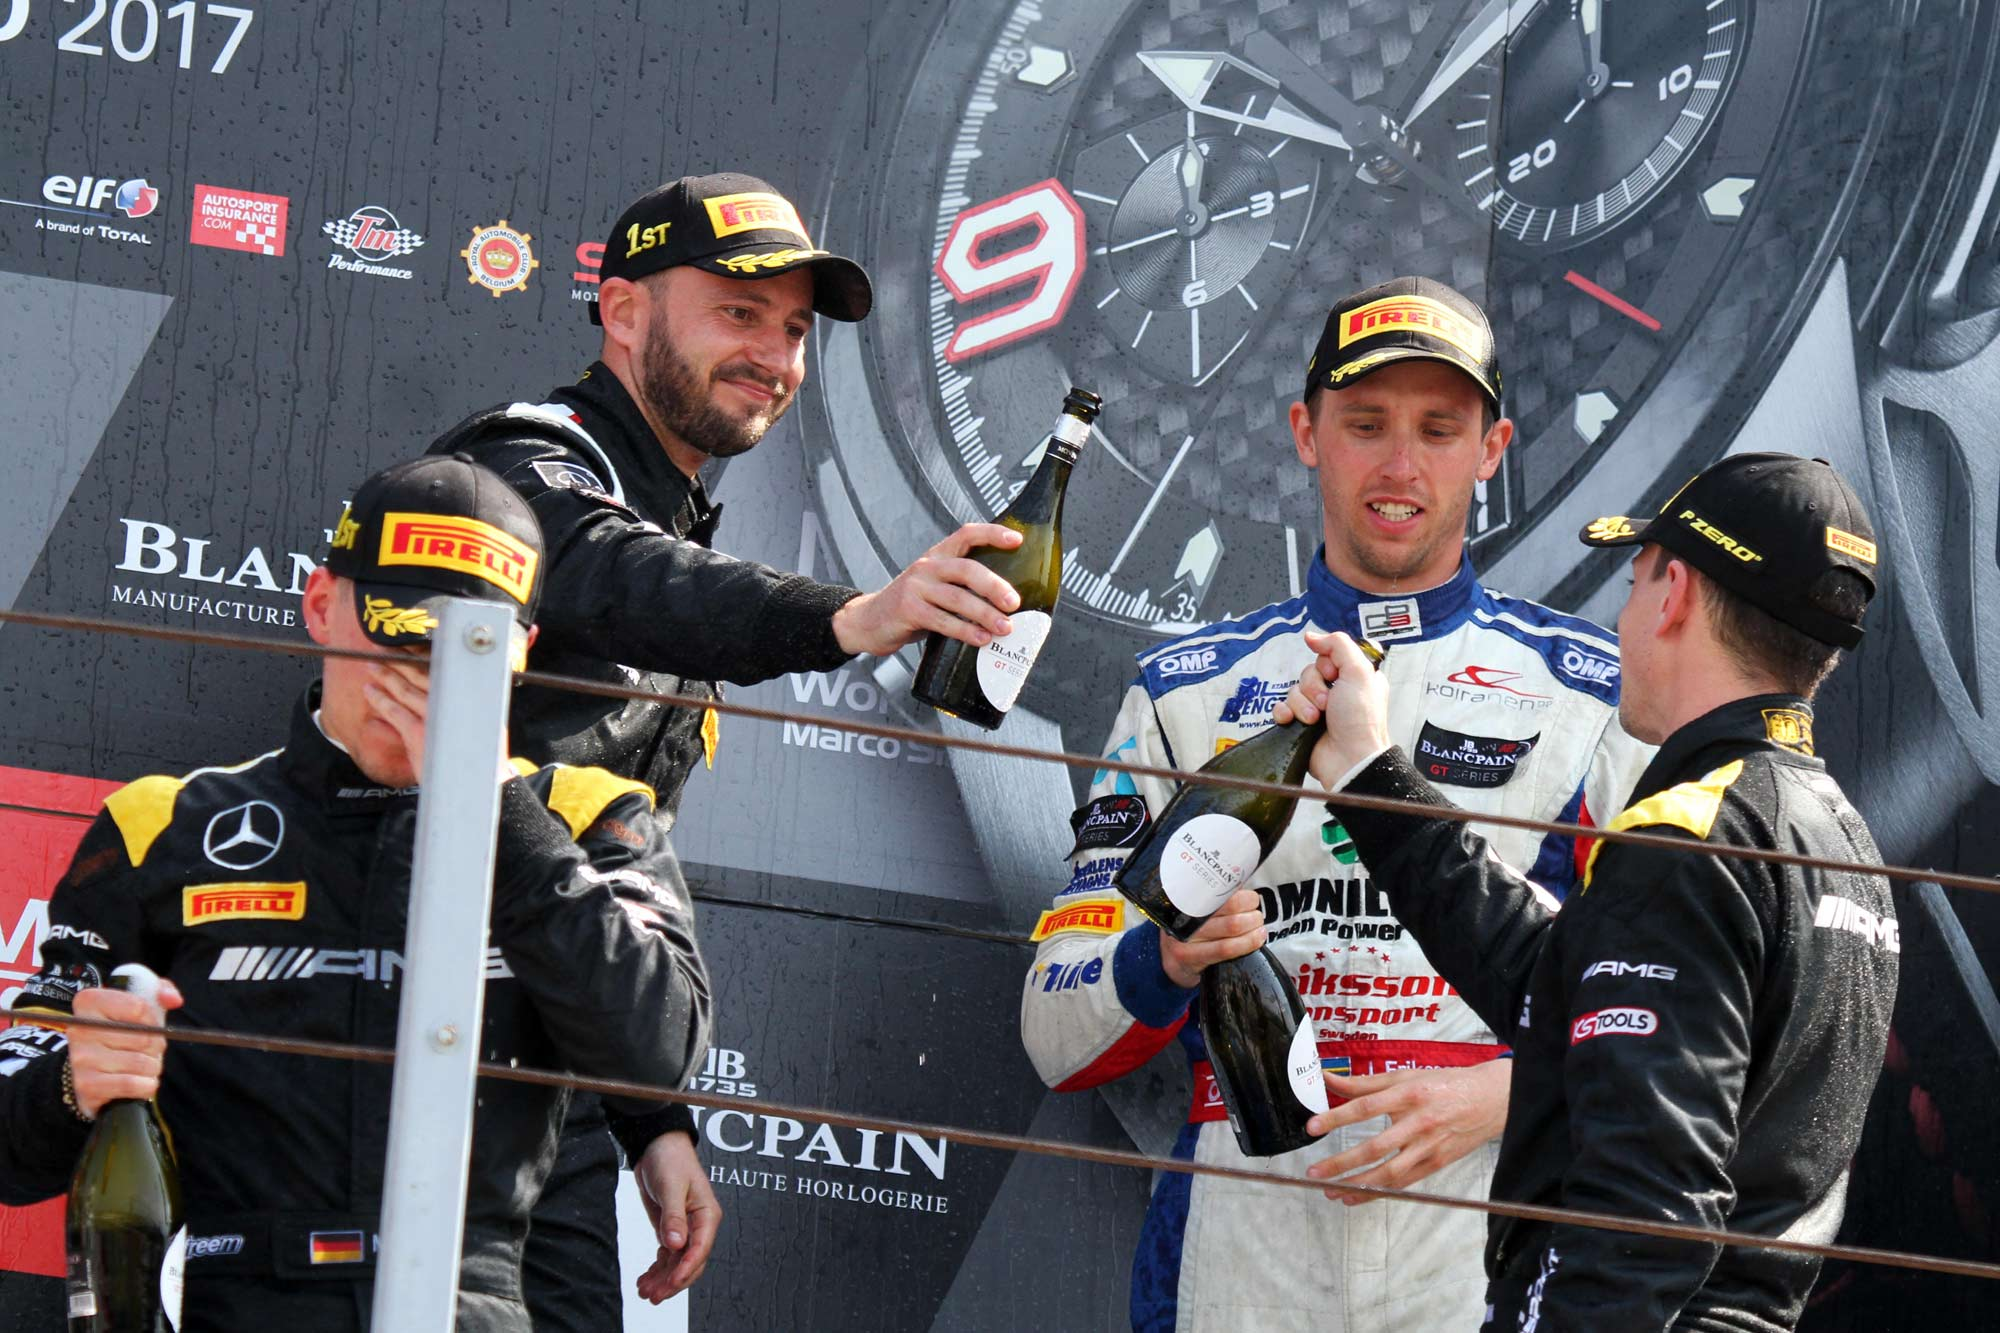 Eriksson fights back to claim Misano podium on promising GT debut